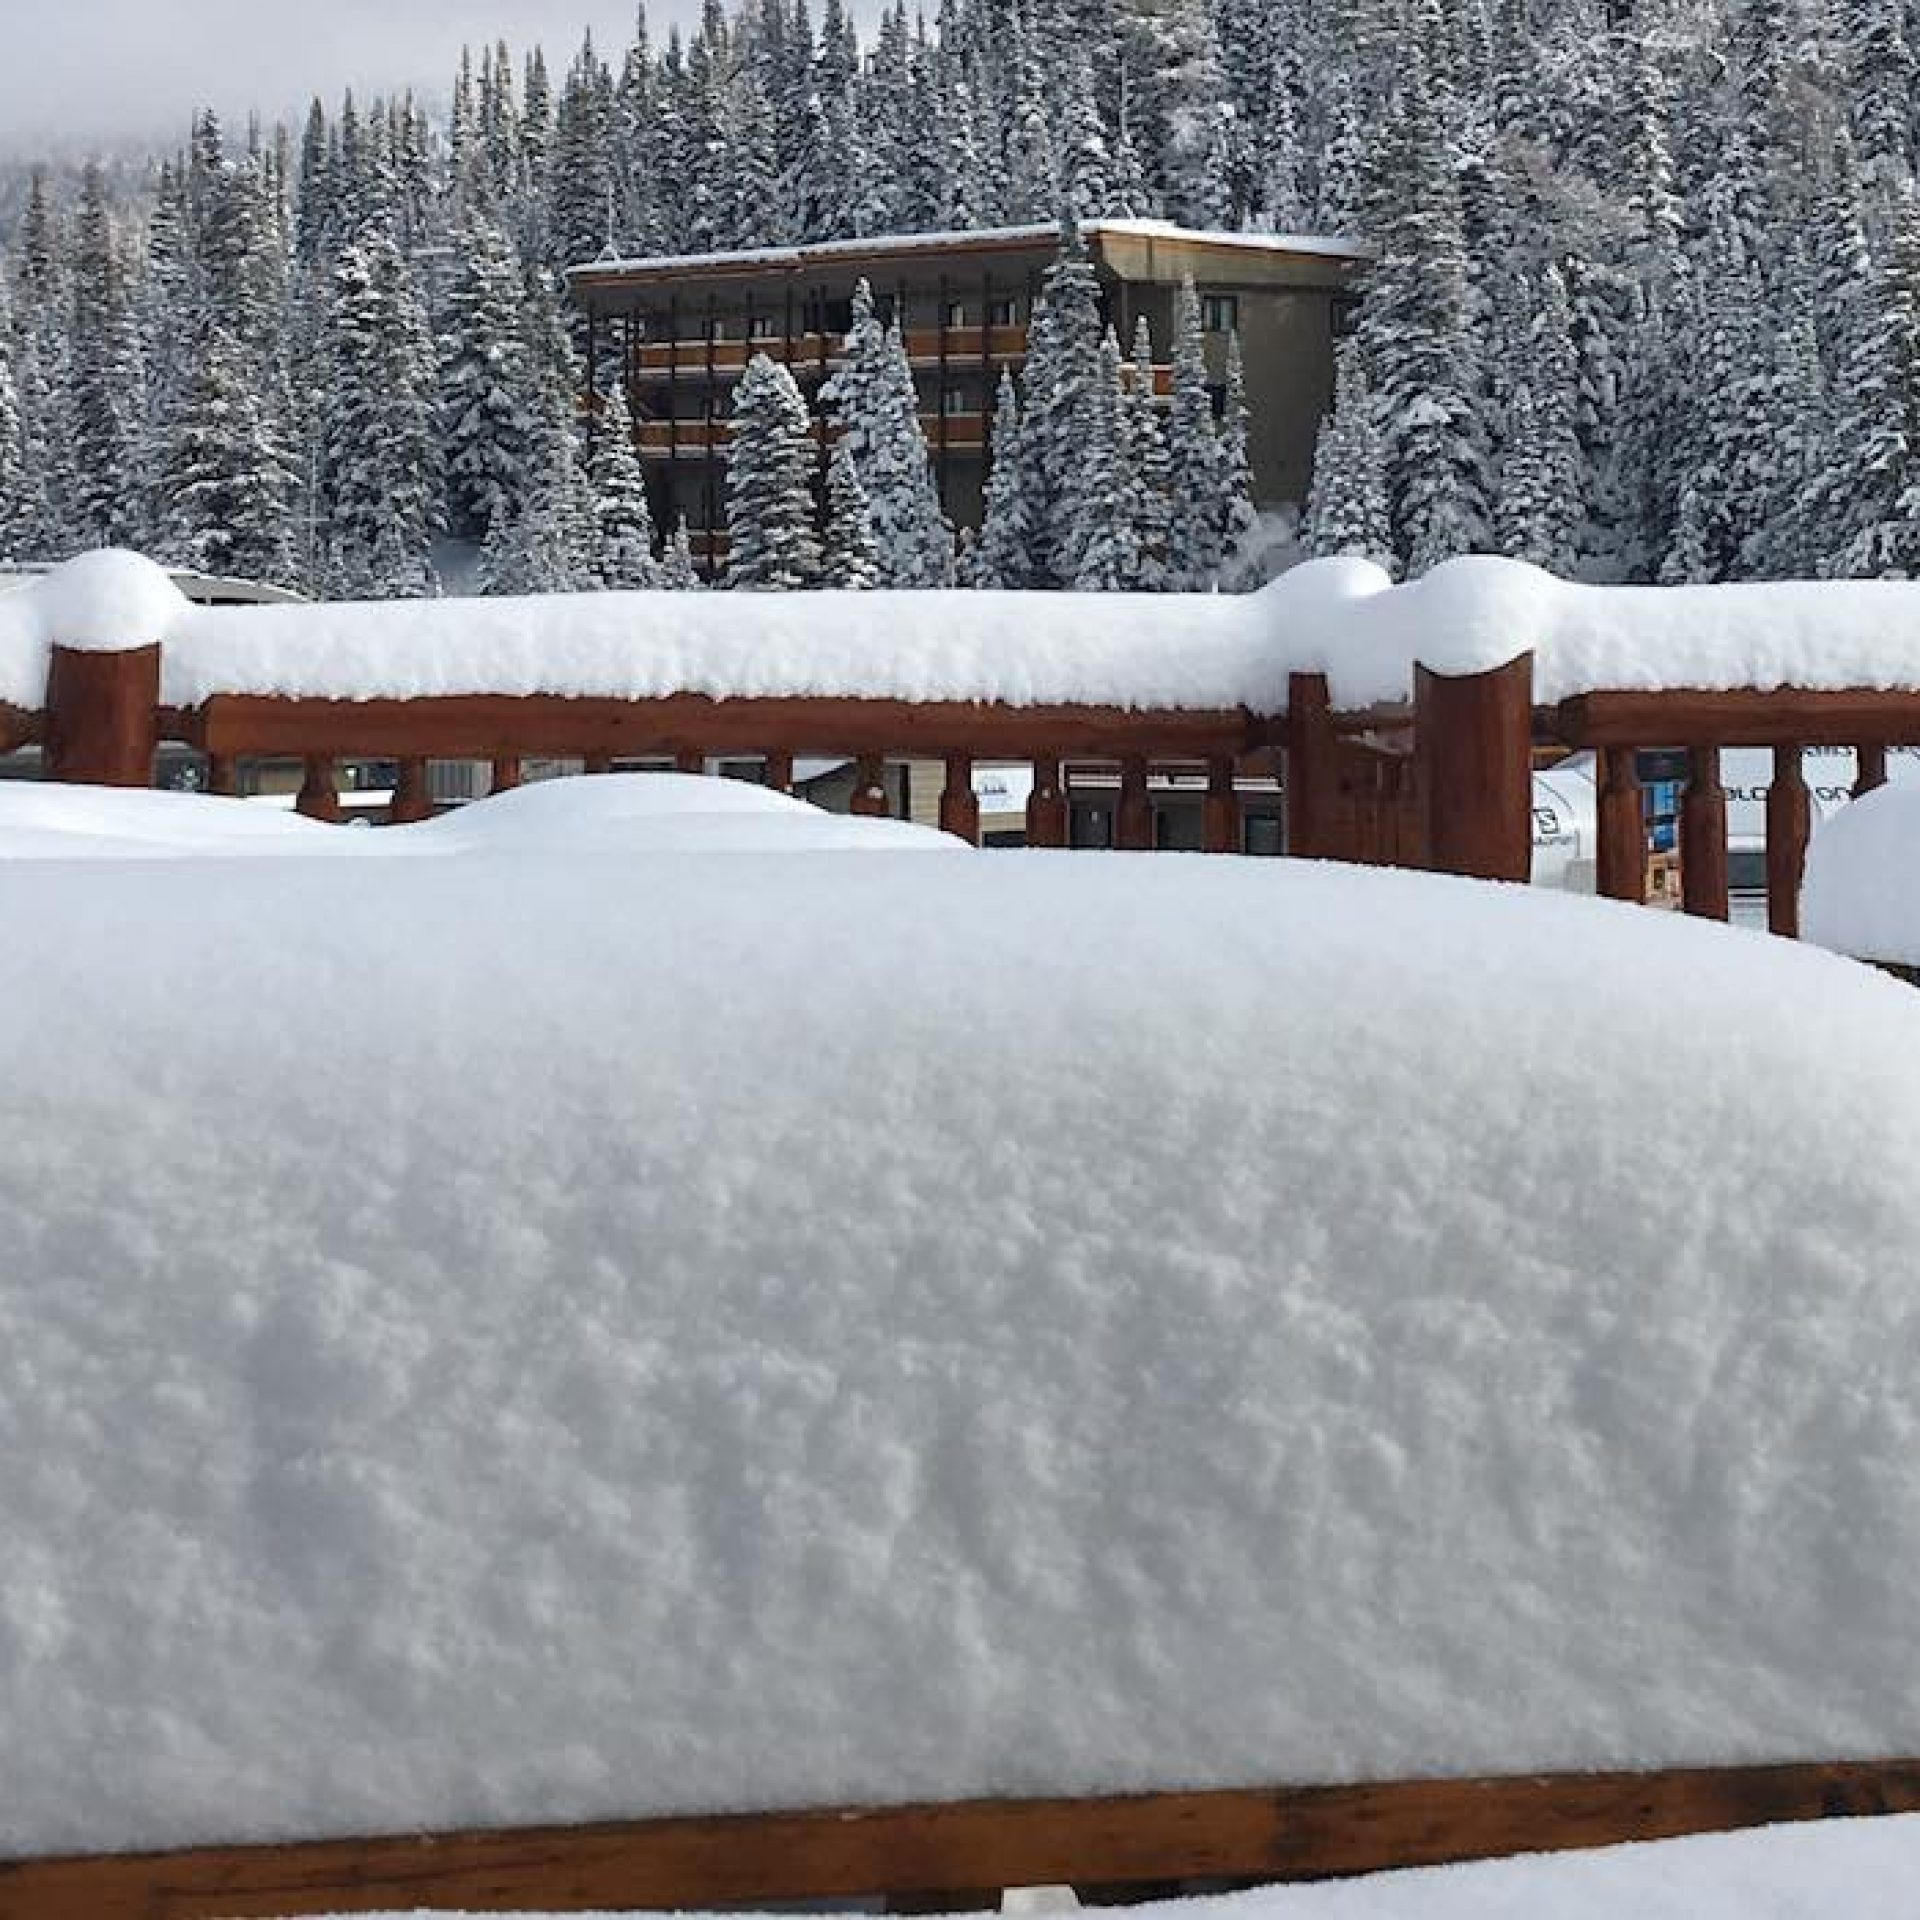 Snow conditions at Banff Sunshine Village on November 16, 2018.